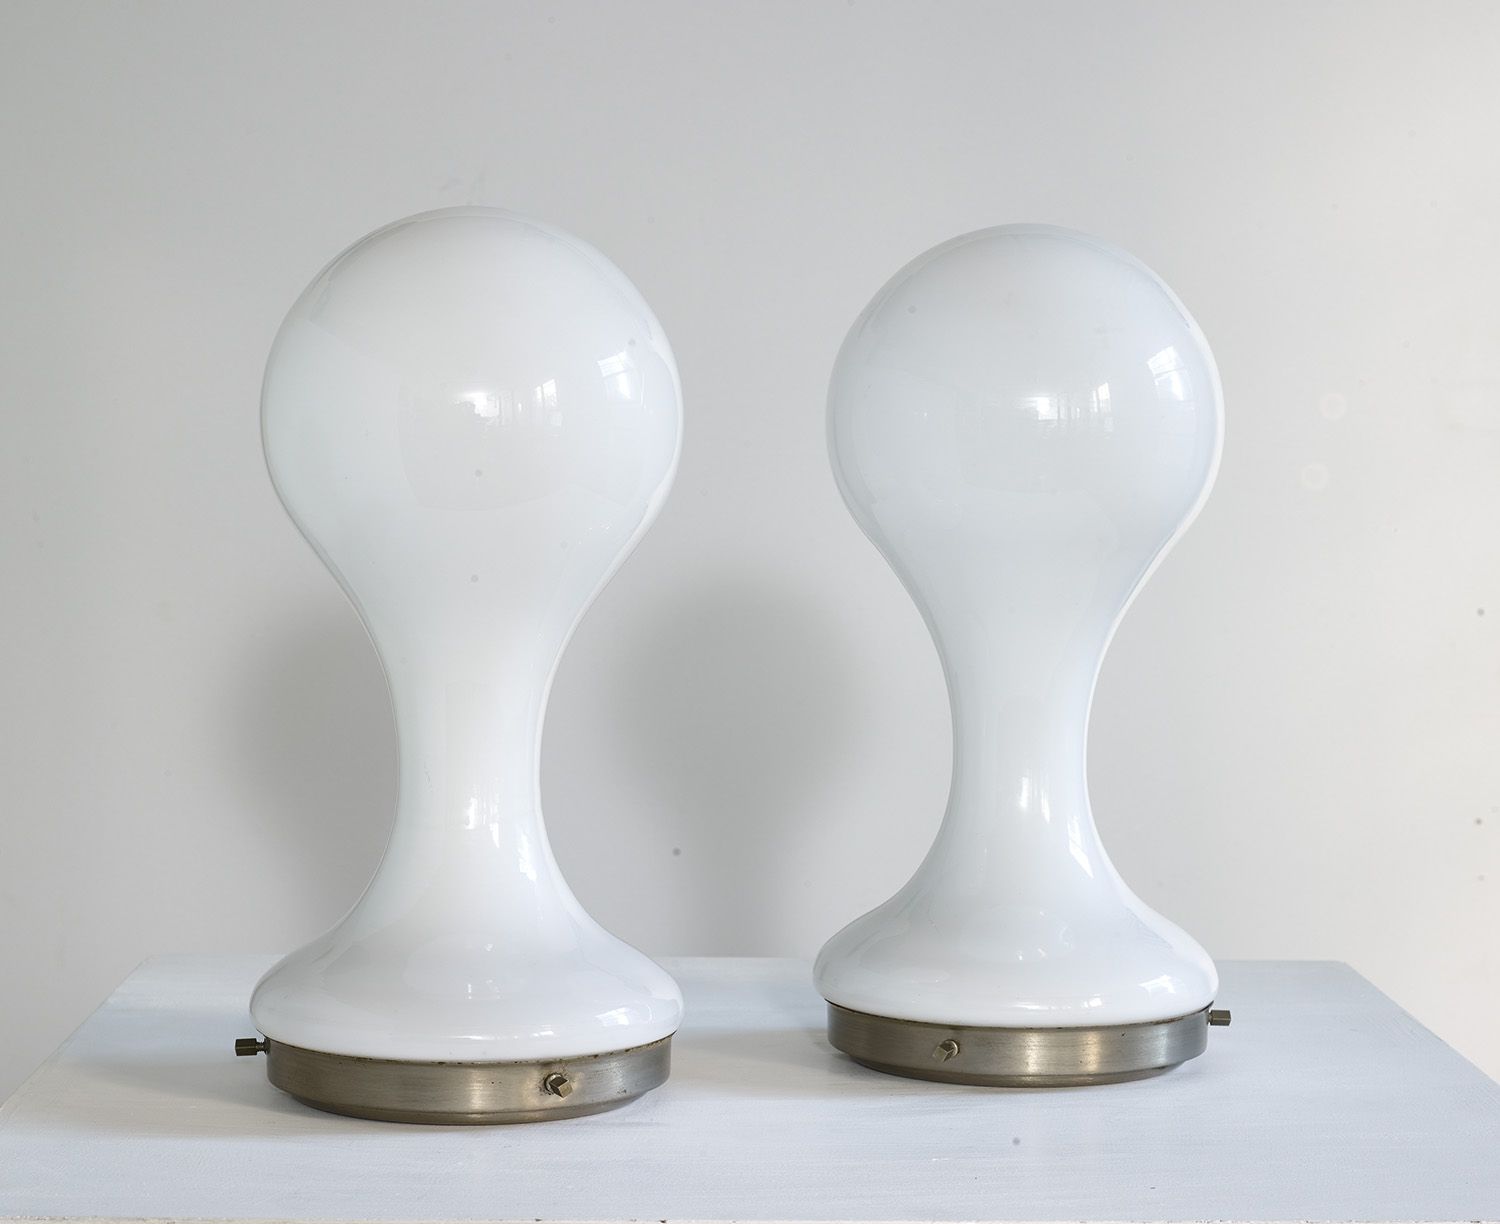 pair-of-table-lamps-by-mazzega-1960-image-03